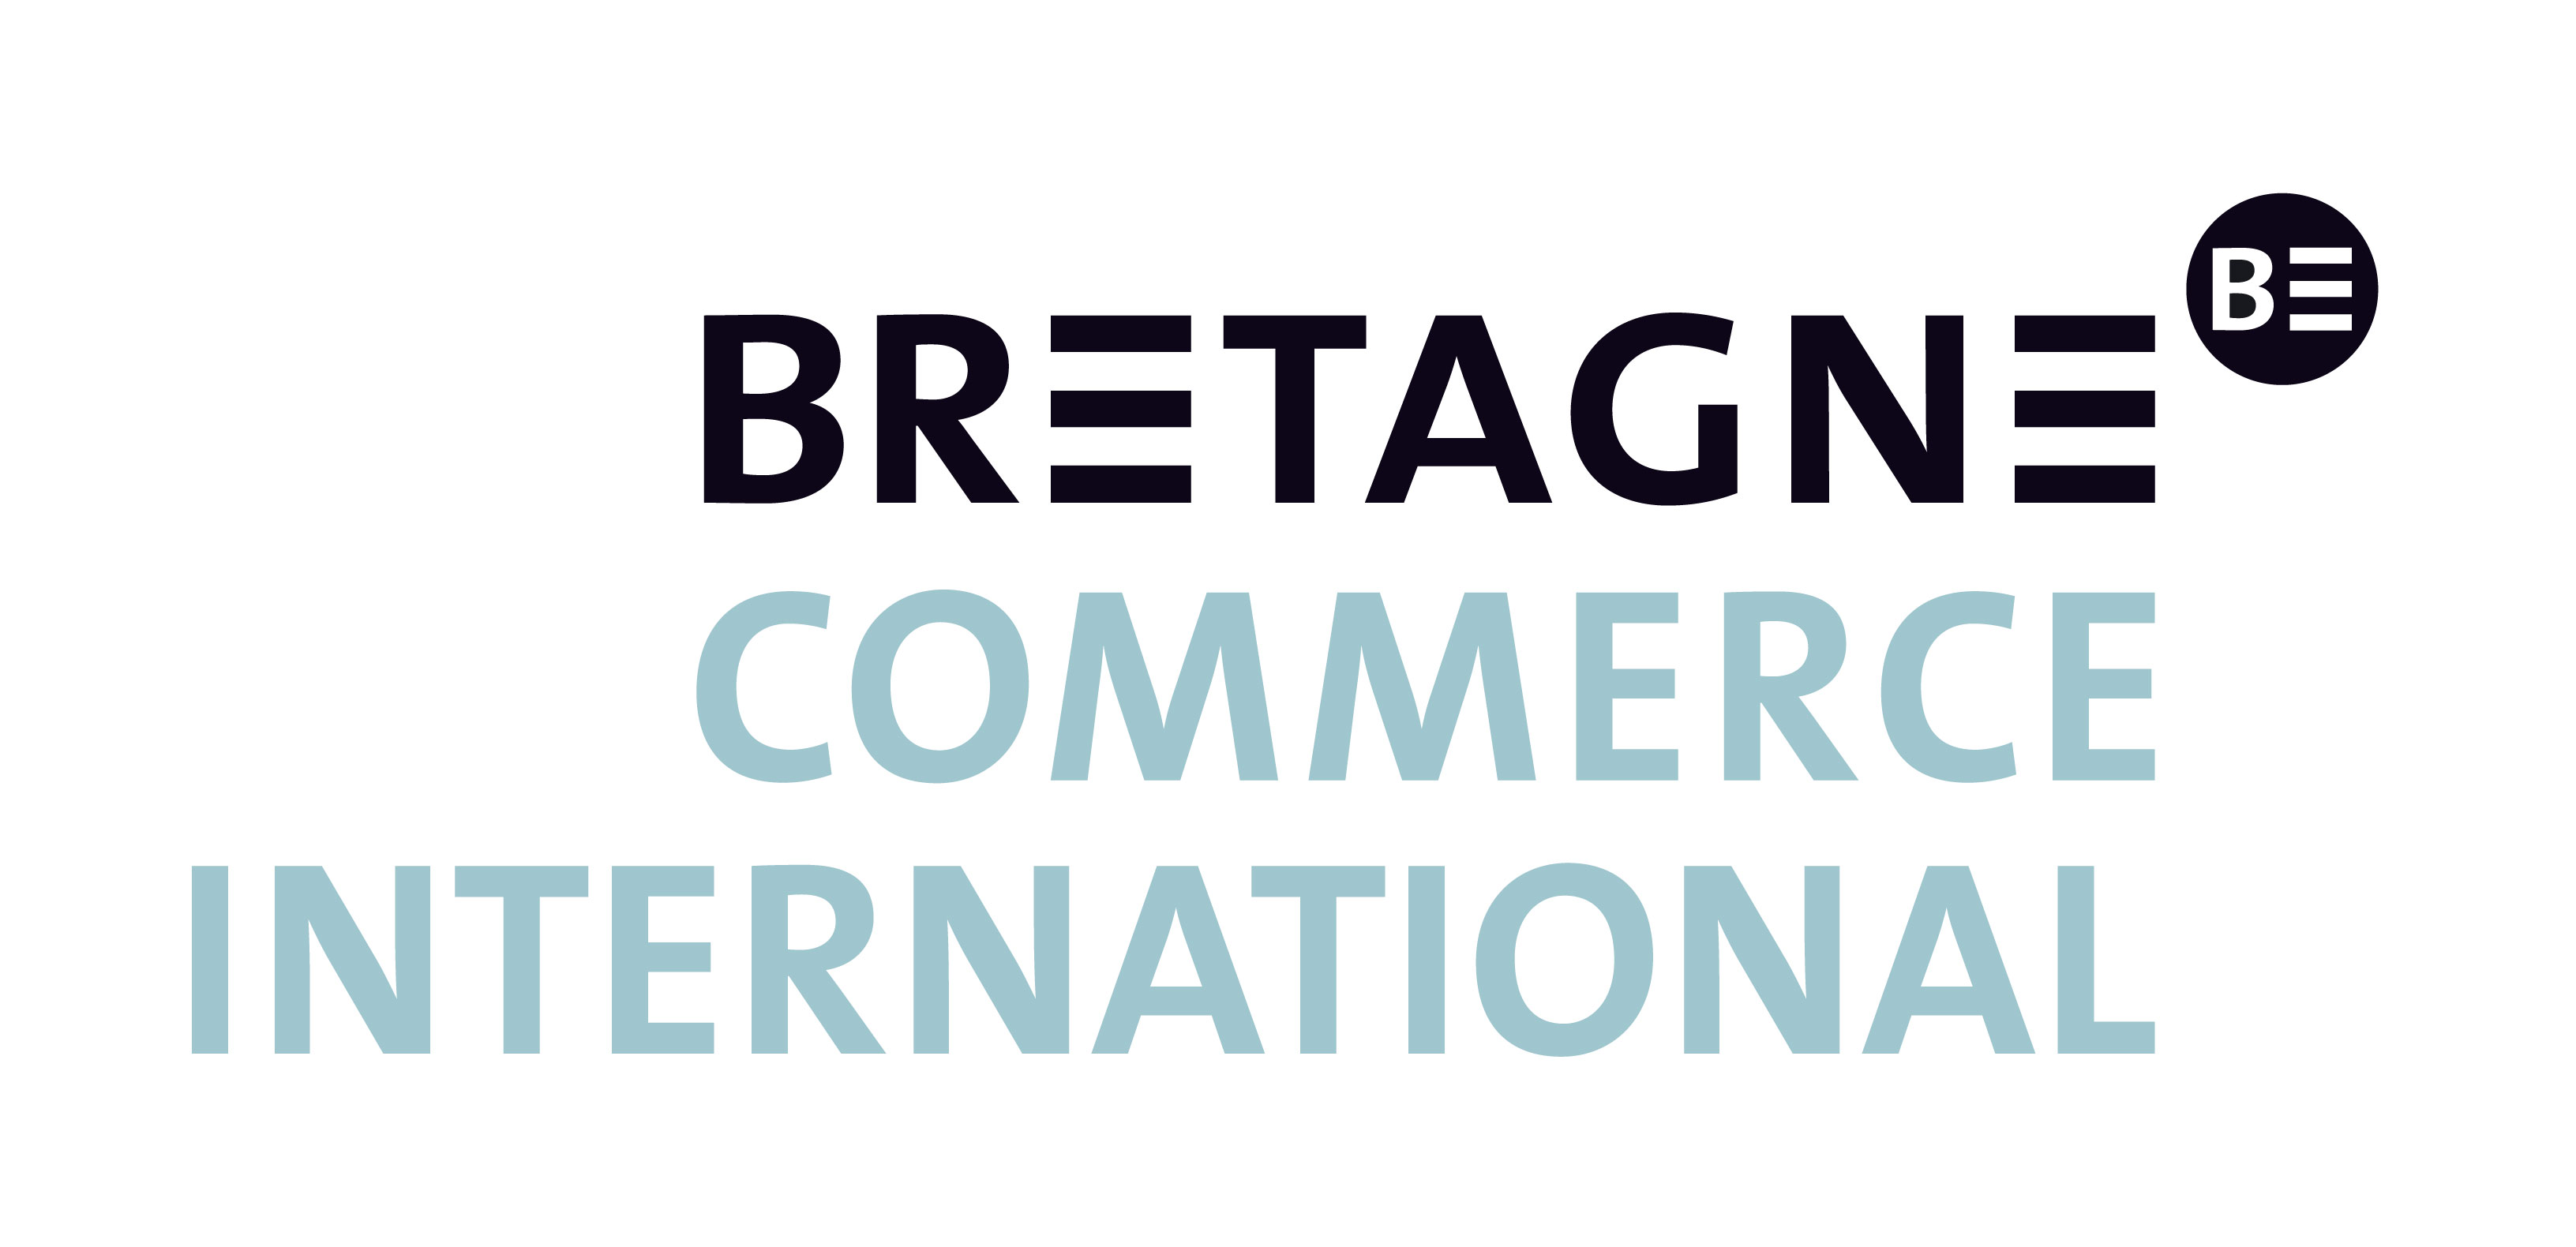 Les fondamentaux du commerce international sp cial brexit chambre de commerce et d 39 industrie - Chambre du commerce international ...